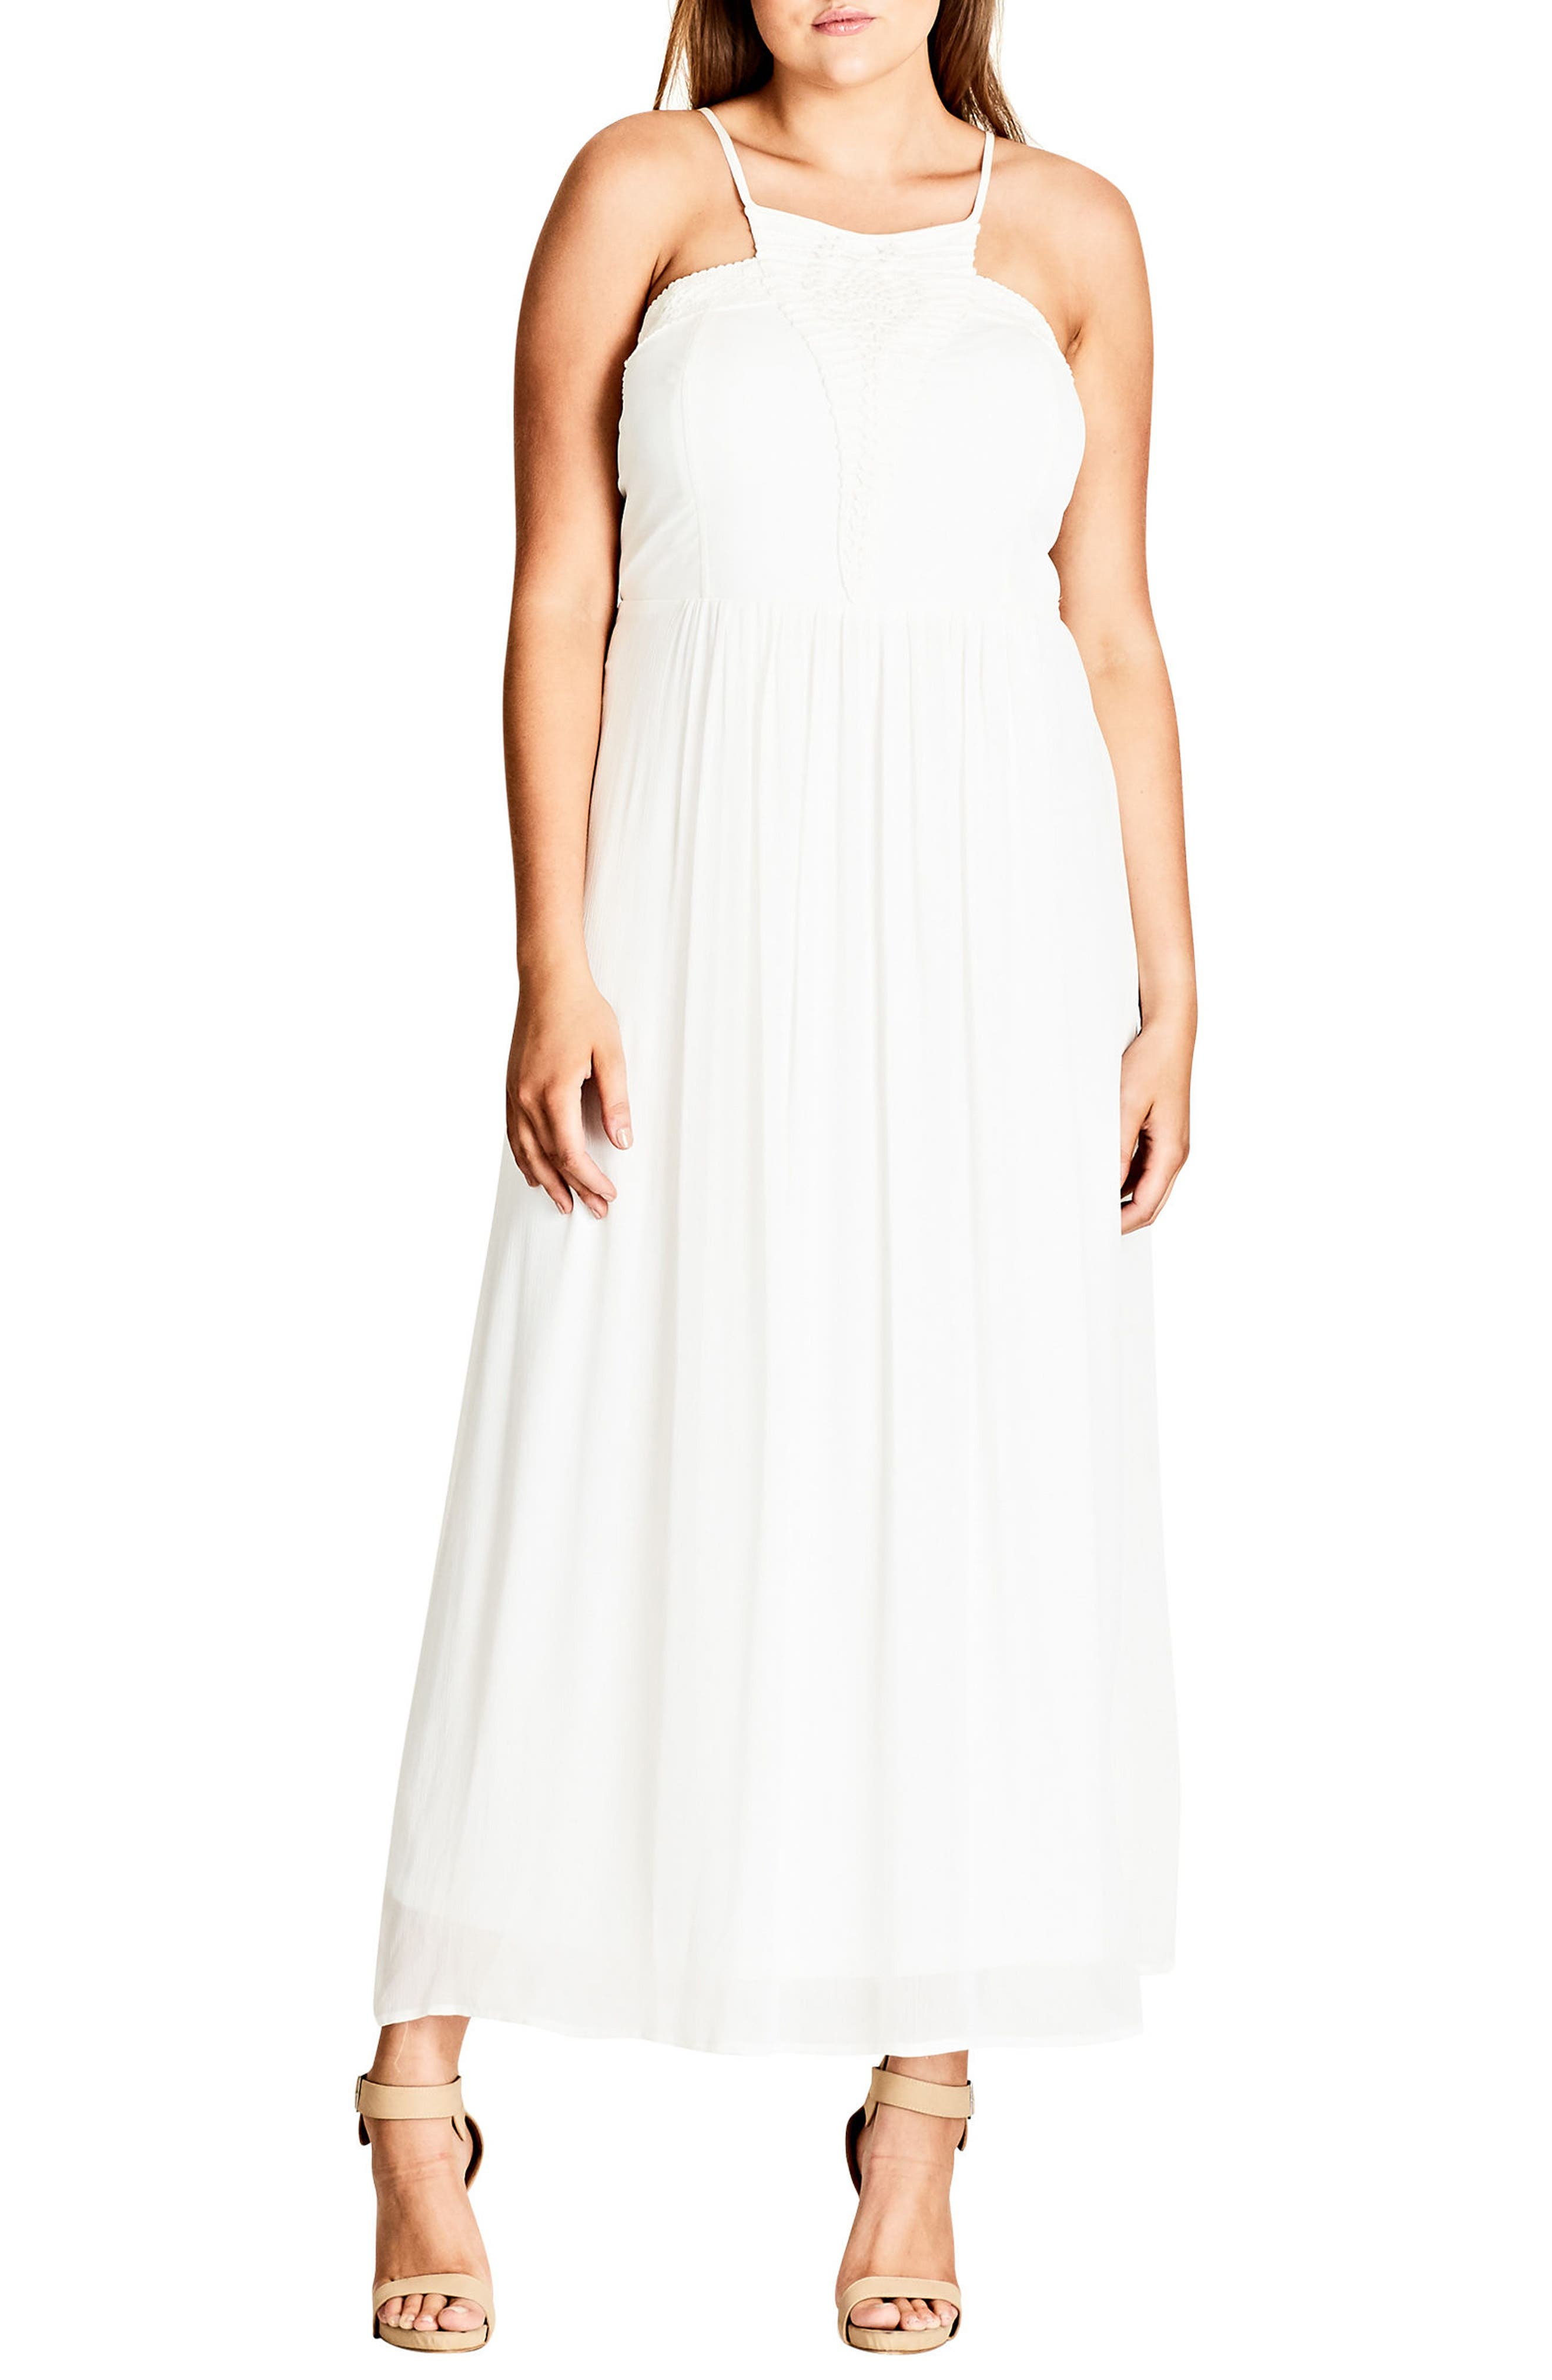 Main Image - City Chic Purity Halter Style Maxi Dress (Plus Size)